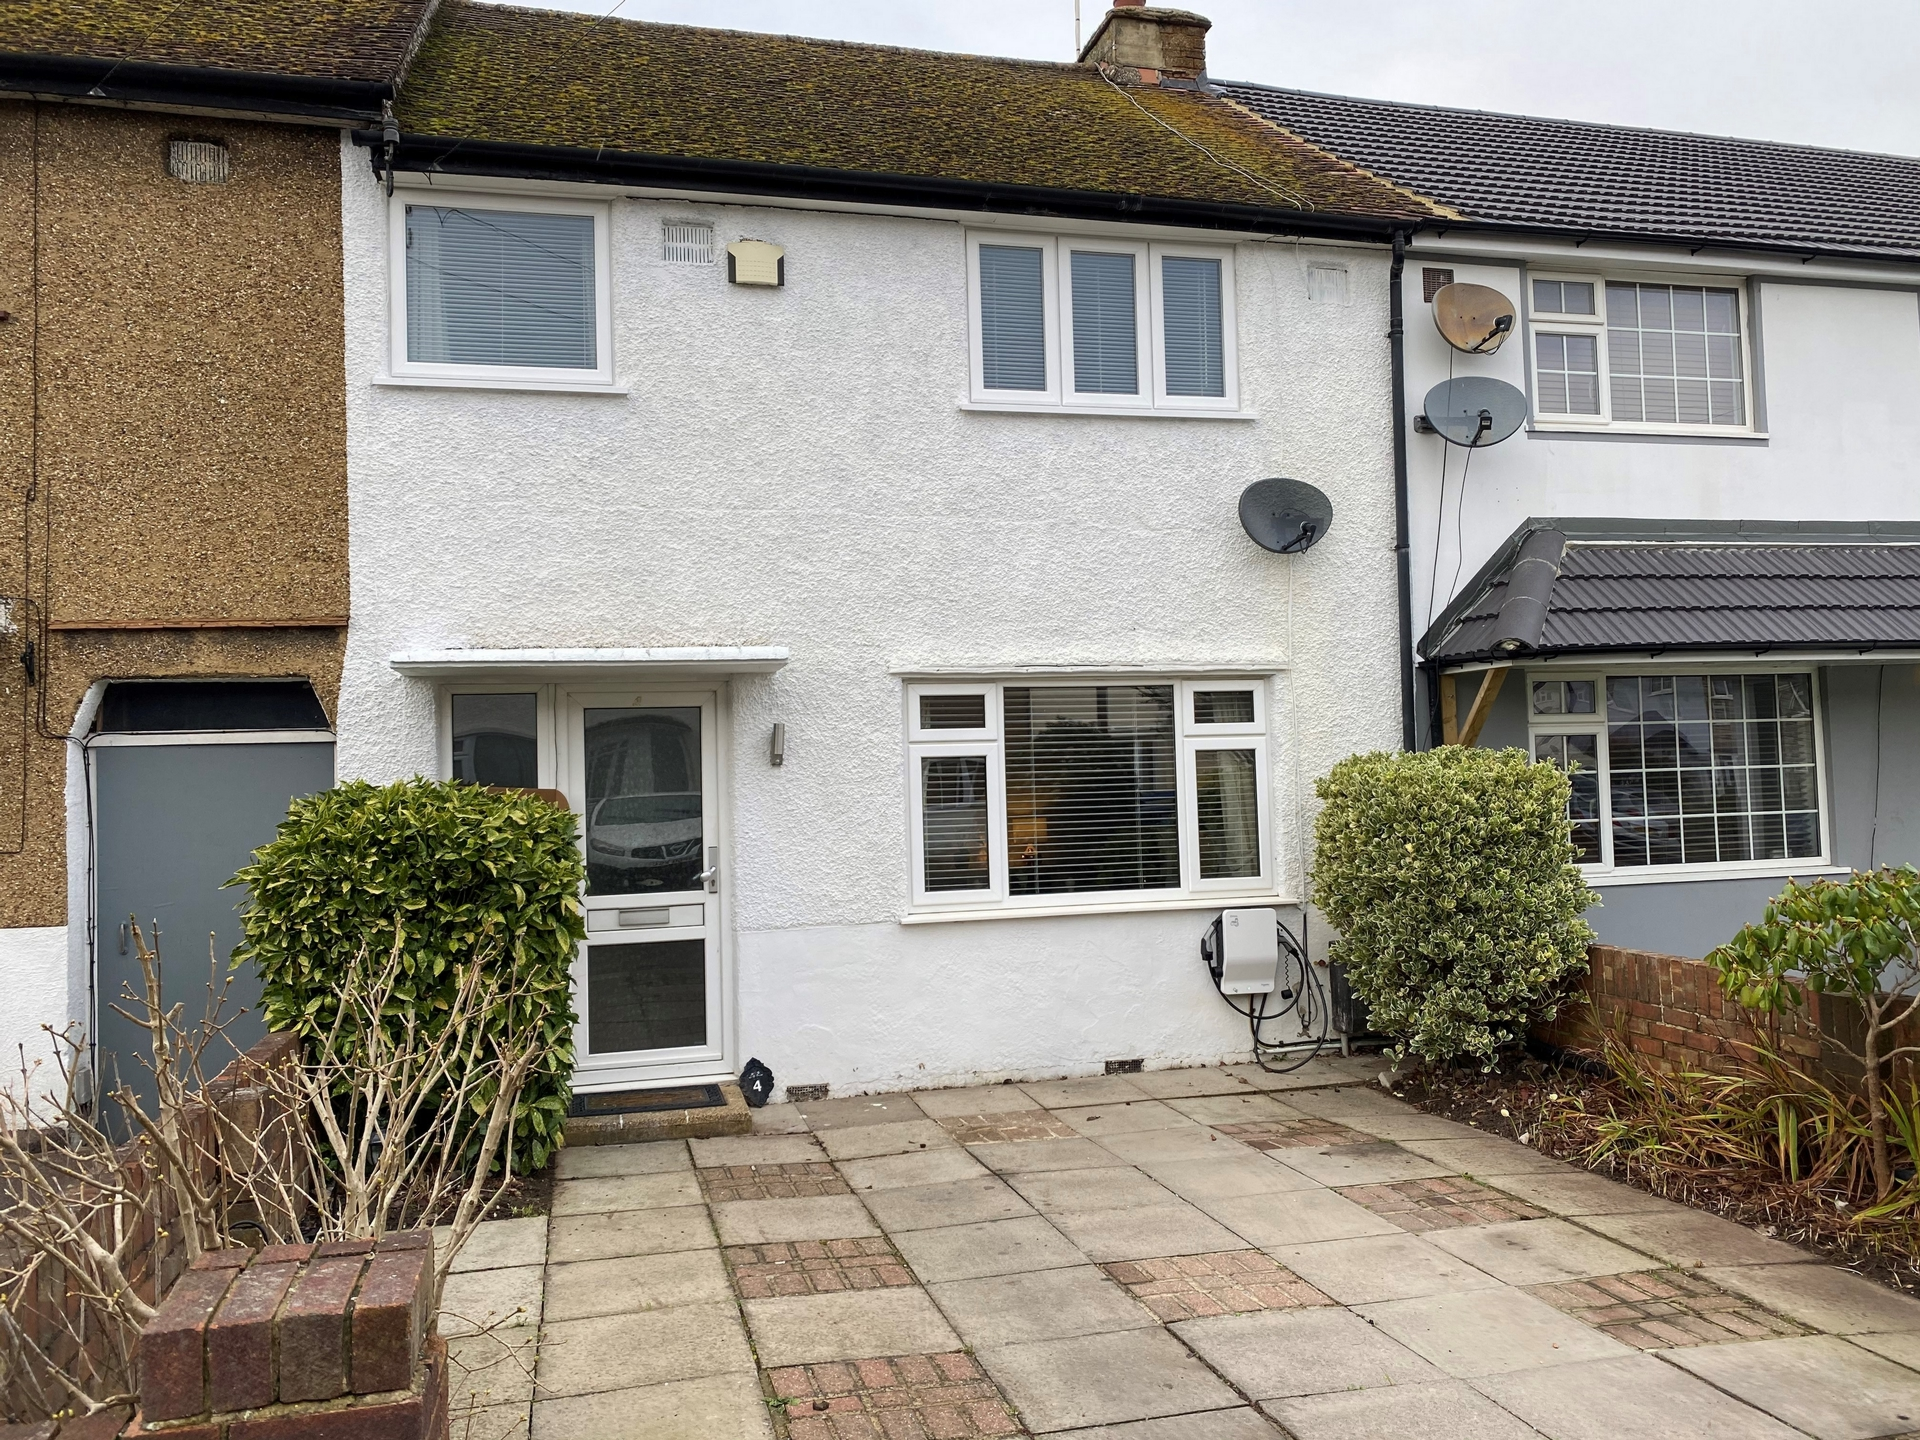 Coombes Road  London Colney  AL2